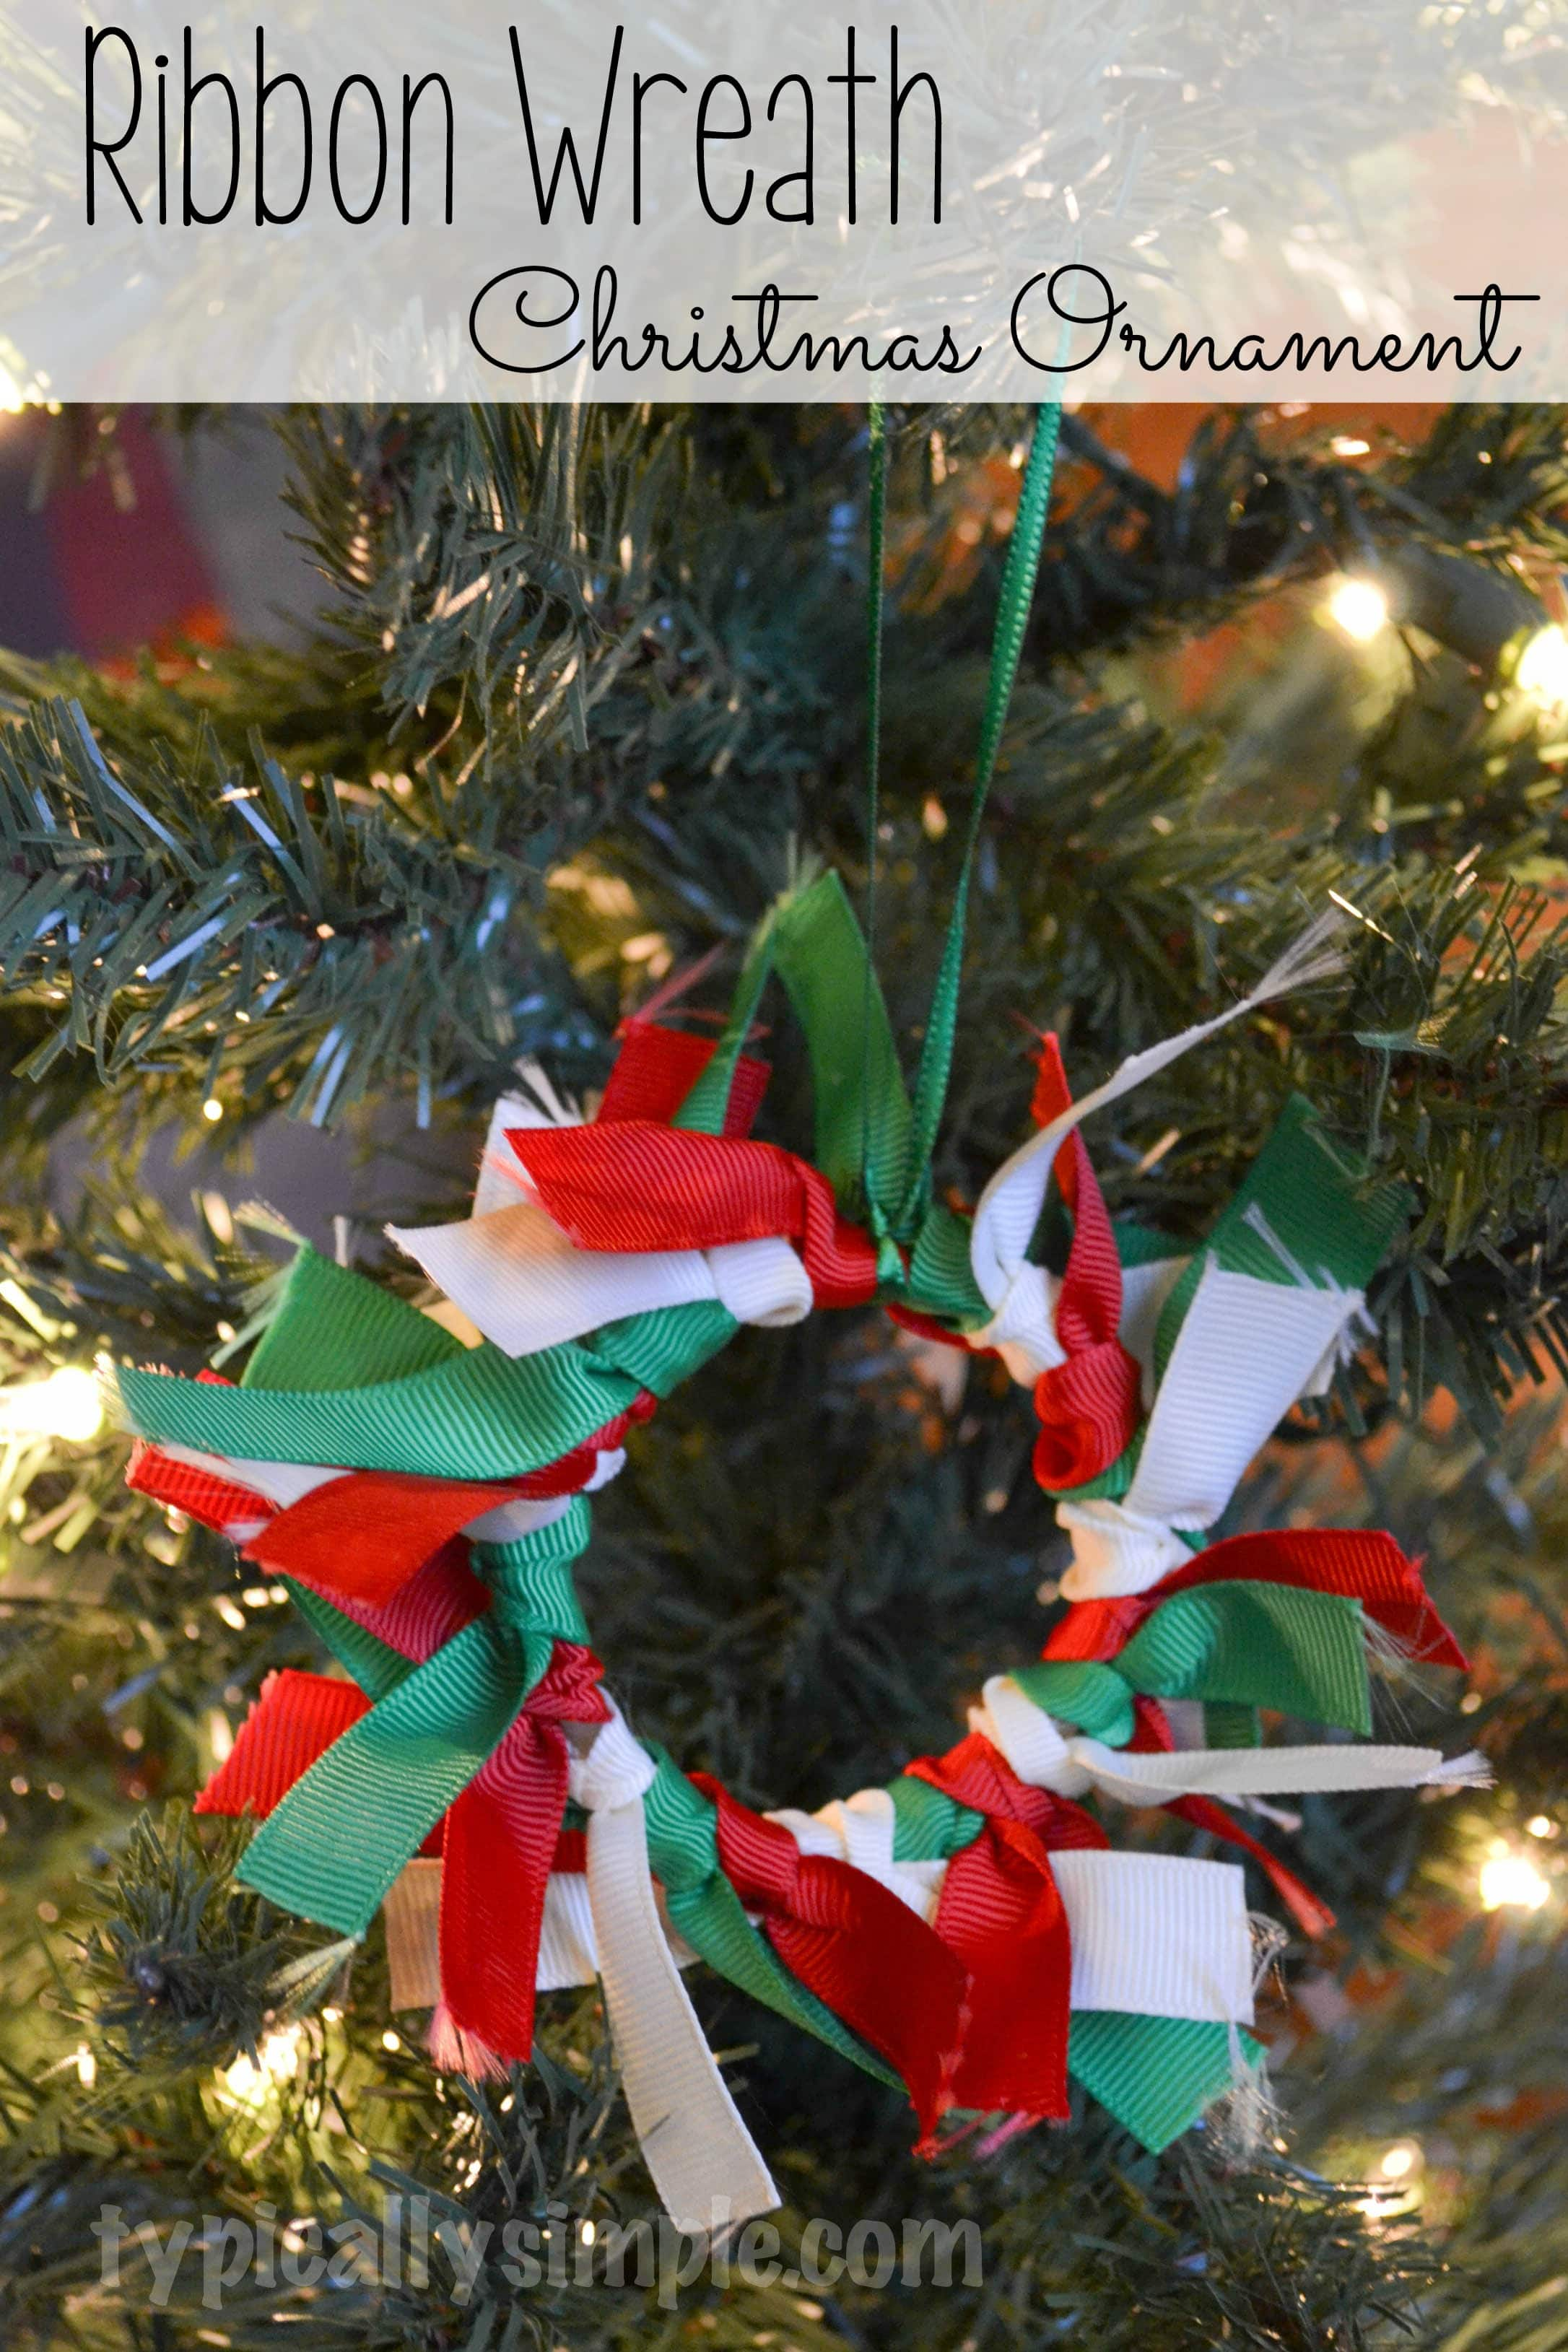 a fun christmas ornament for kids using ribbon perfect for them to make for grandparents